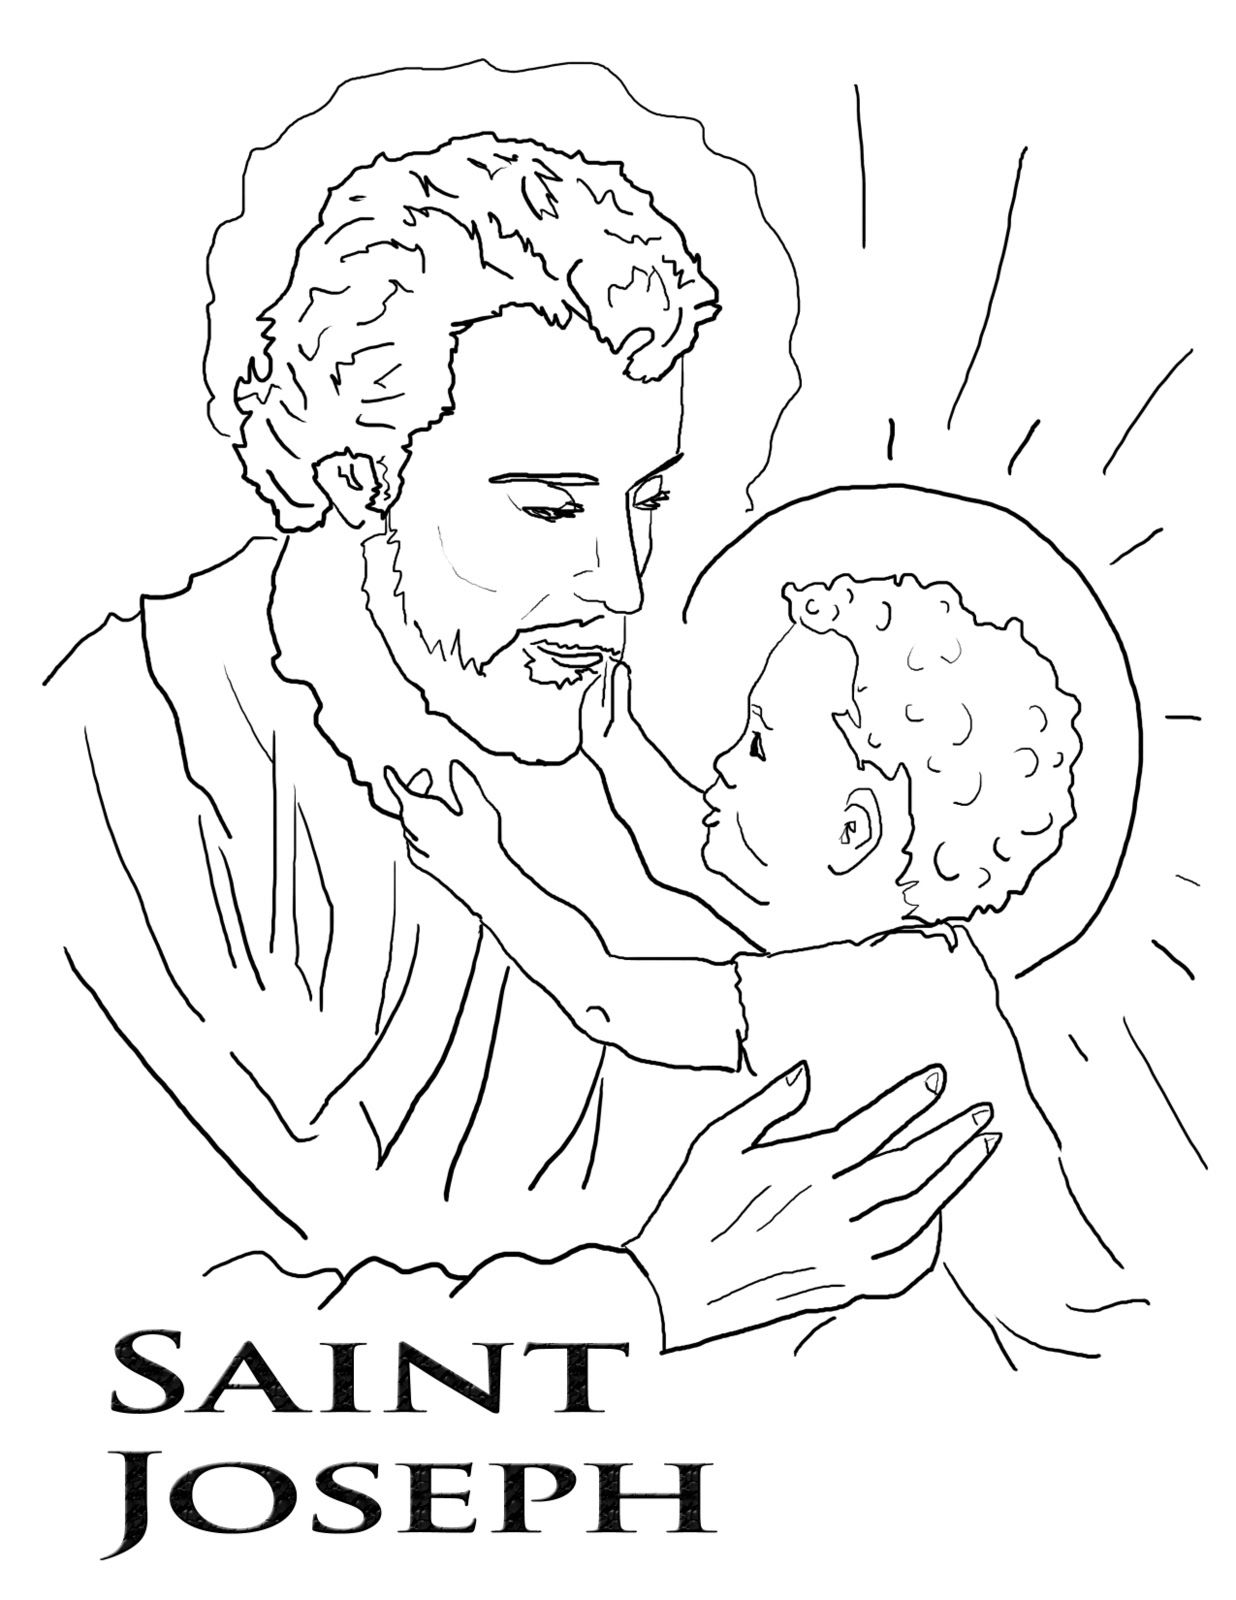 St Joseph Coloring Page Feast Of St Joseph Patron St Coloring Page Catholic